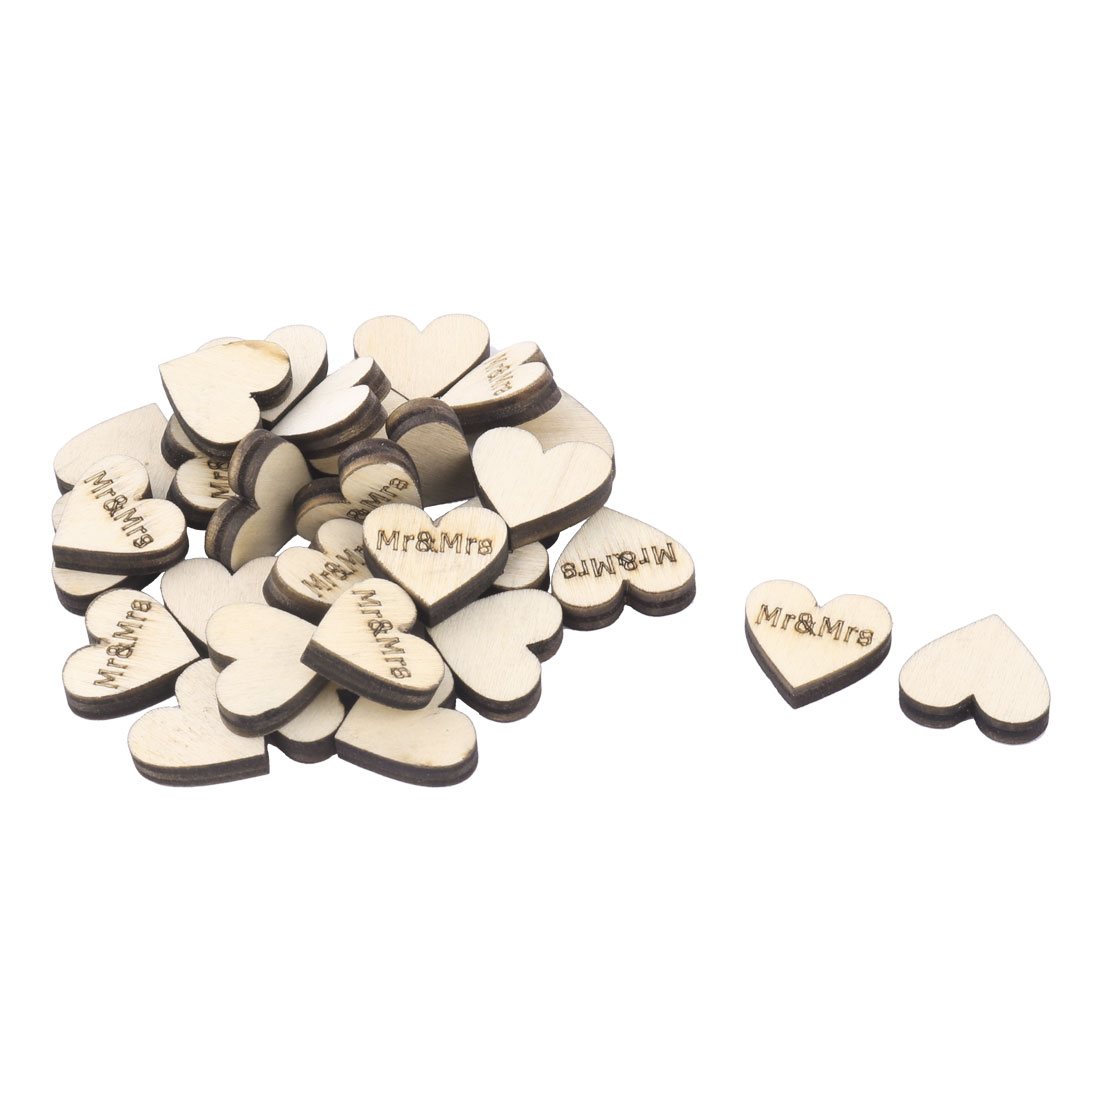 Wooden Heart Shape DIY Crafts Wedding Table Decor Accessories Embellishment 30 Pcs